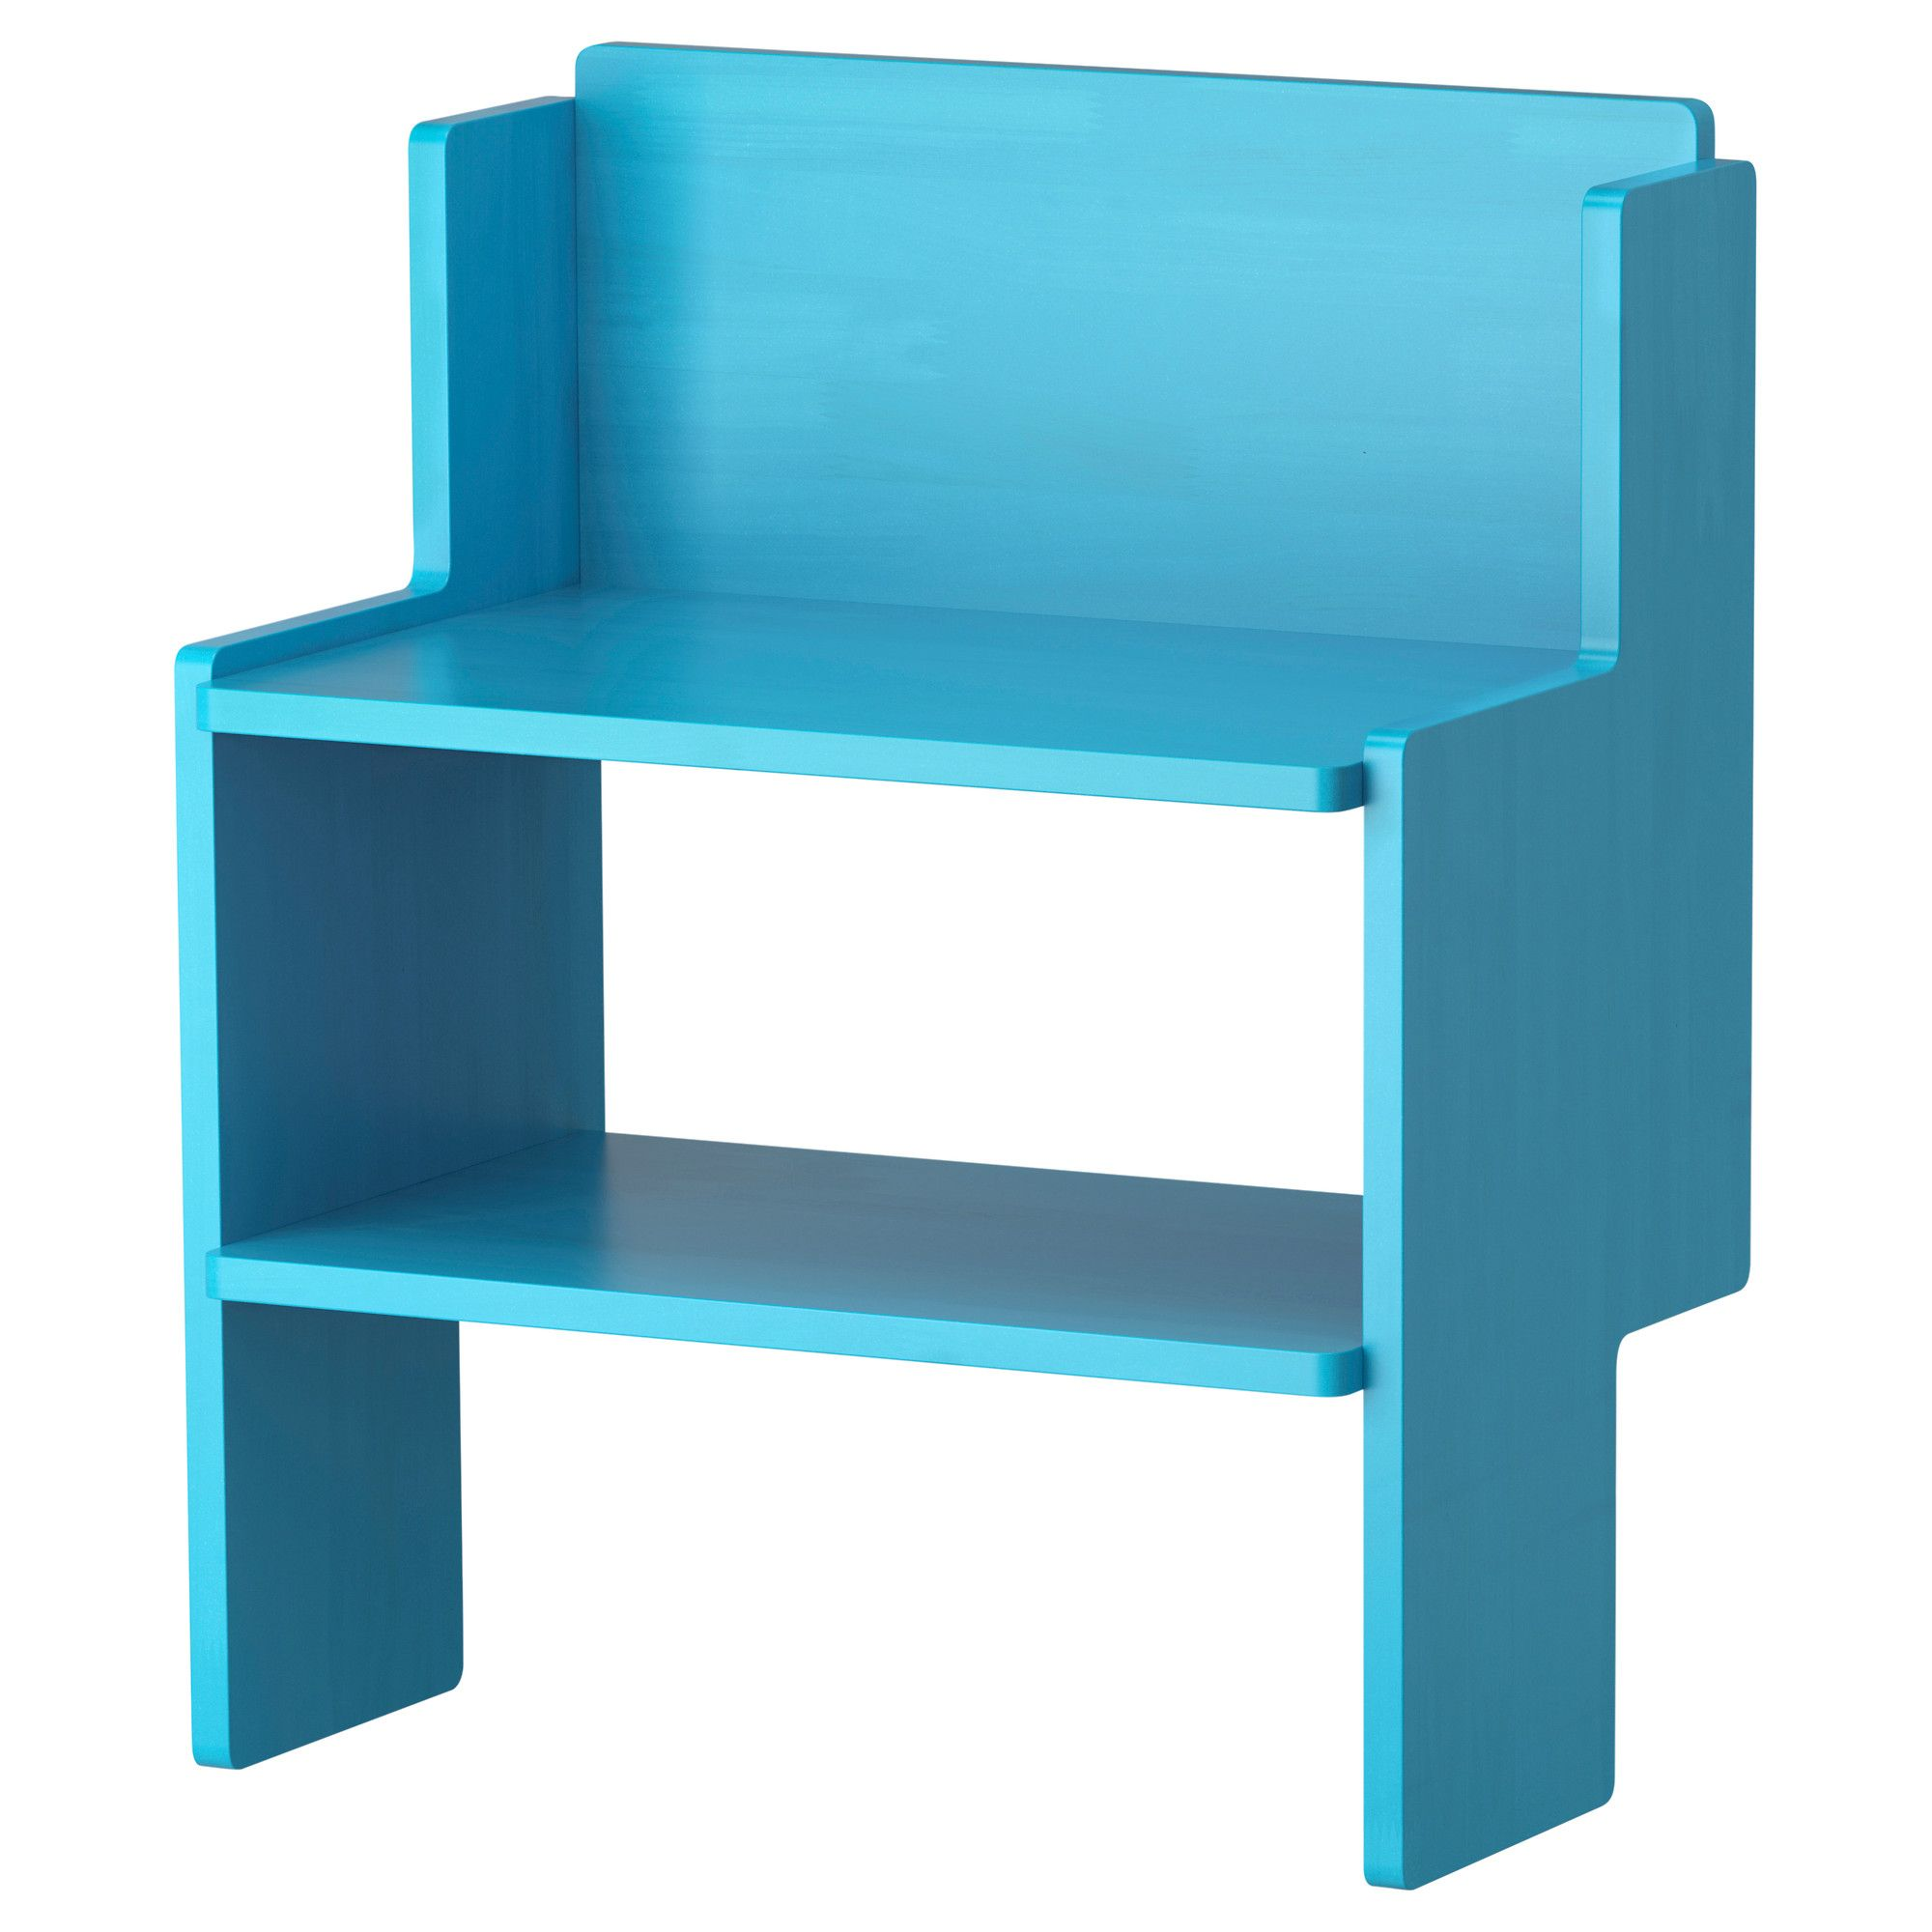 Us Furniture And Home Furnishings Ikea Ps Ikea Ps 2012 Bench